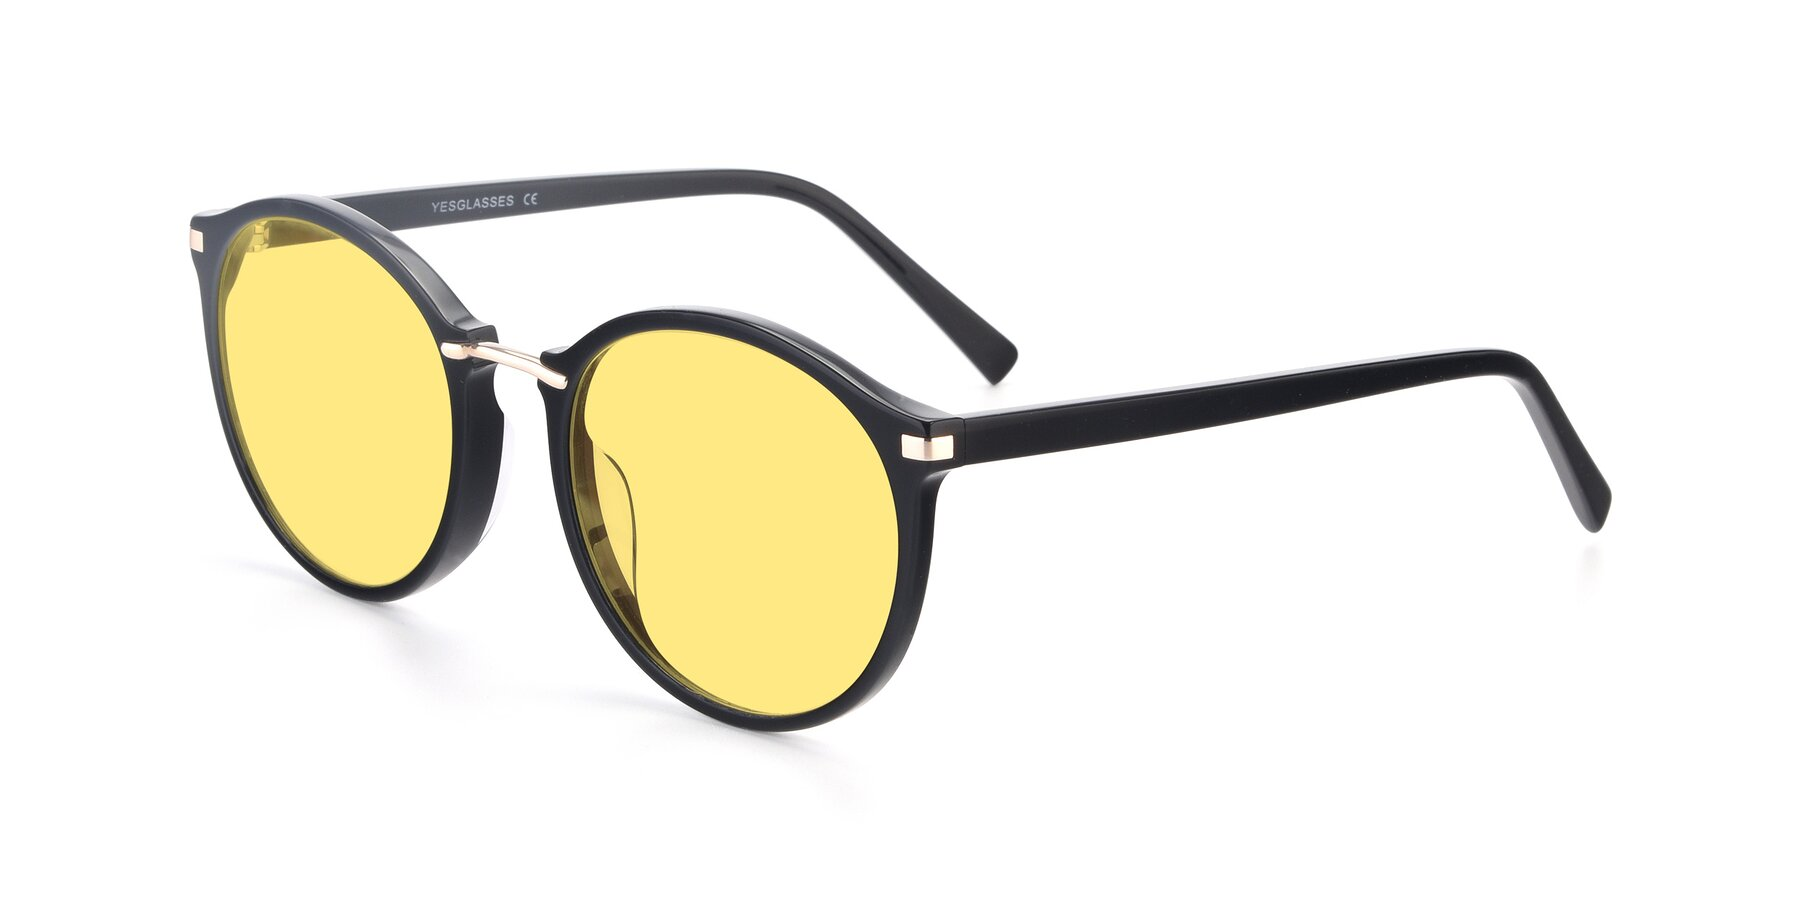 Angle of 17582 in Black with Medium Yellow Tinted Lenses